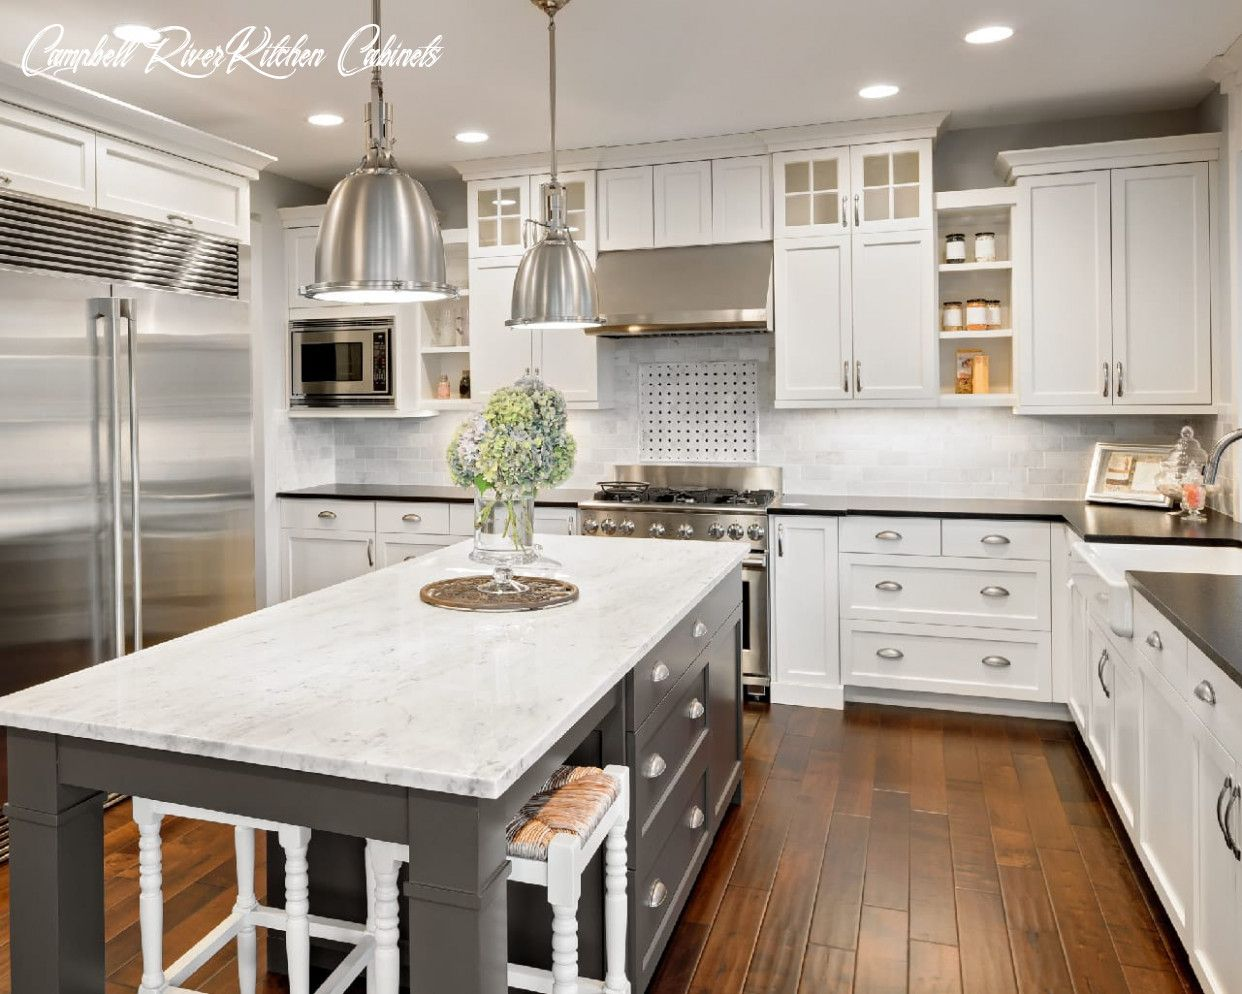 Campbell River Kitchen Cabinets In 2020 Kitchen Cabinets Rustic Kitchen Rustic Kitchen Design